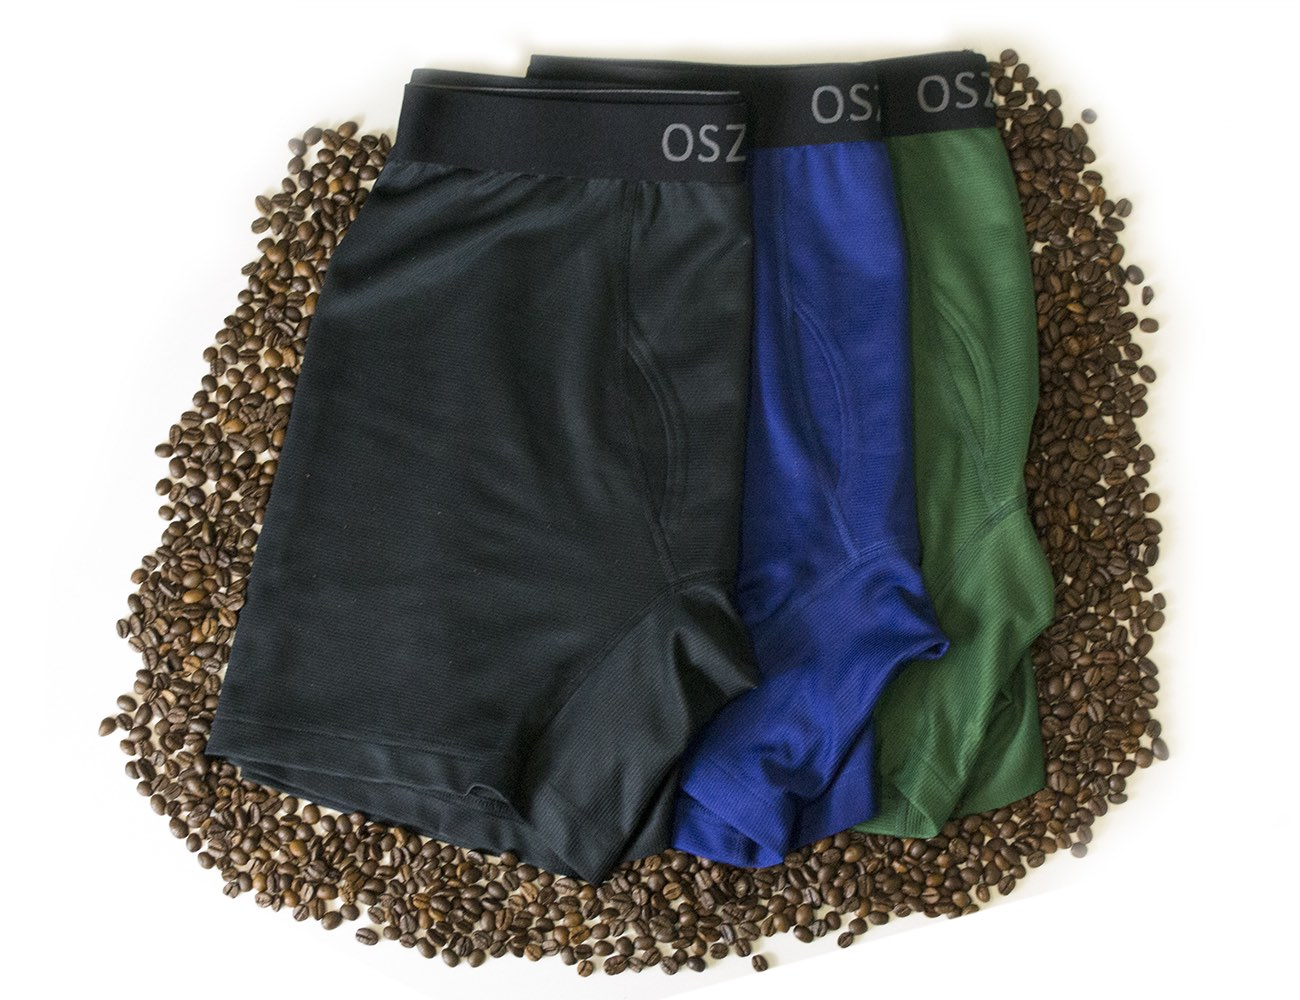 Oszko – Functional Men's Underwear Made From Coffee